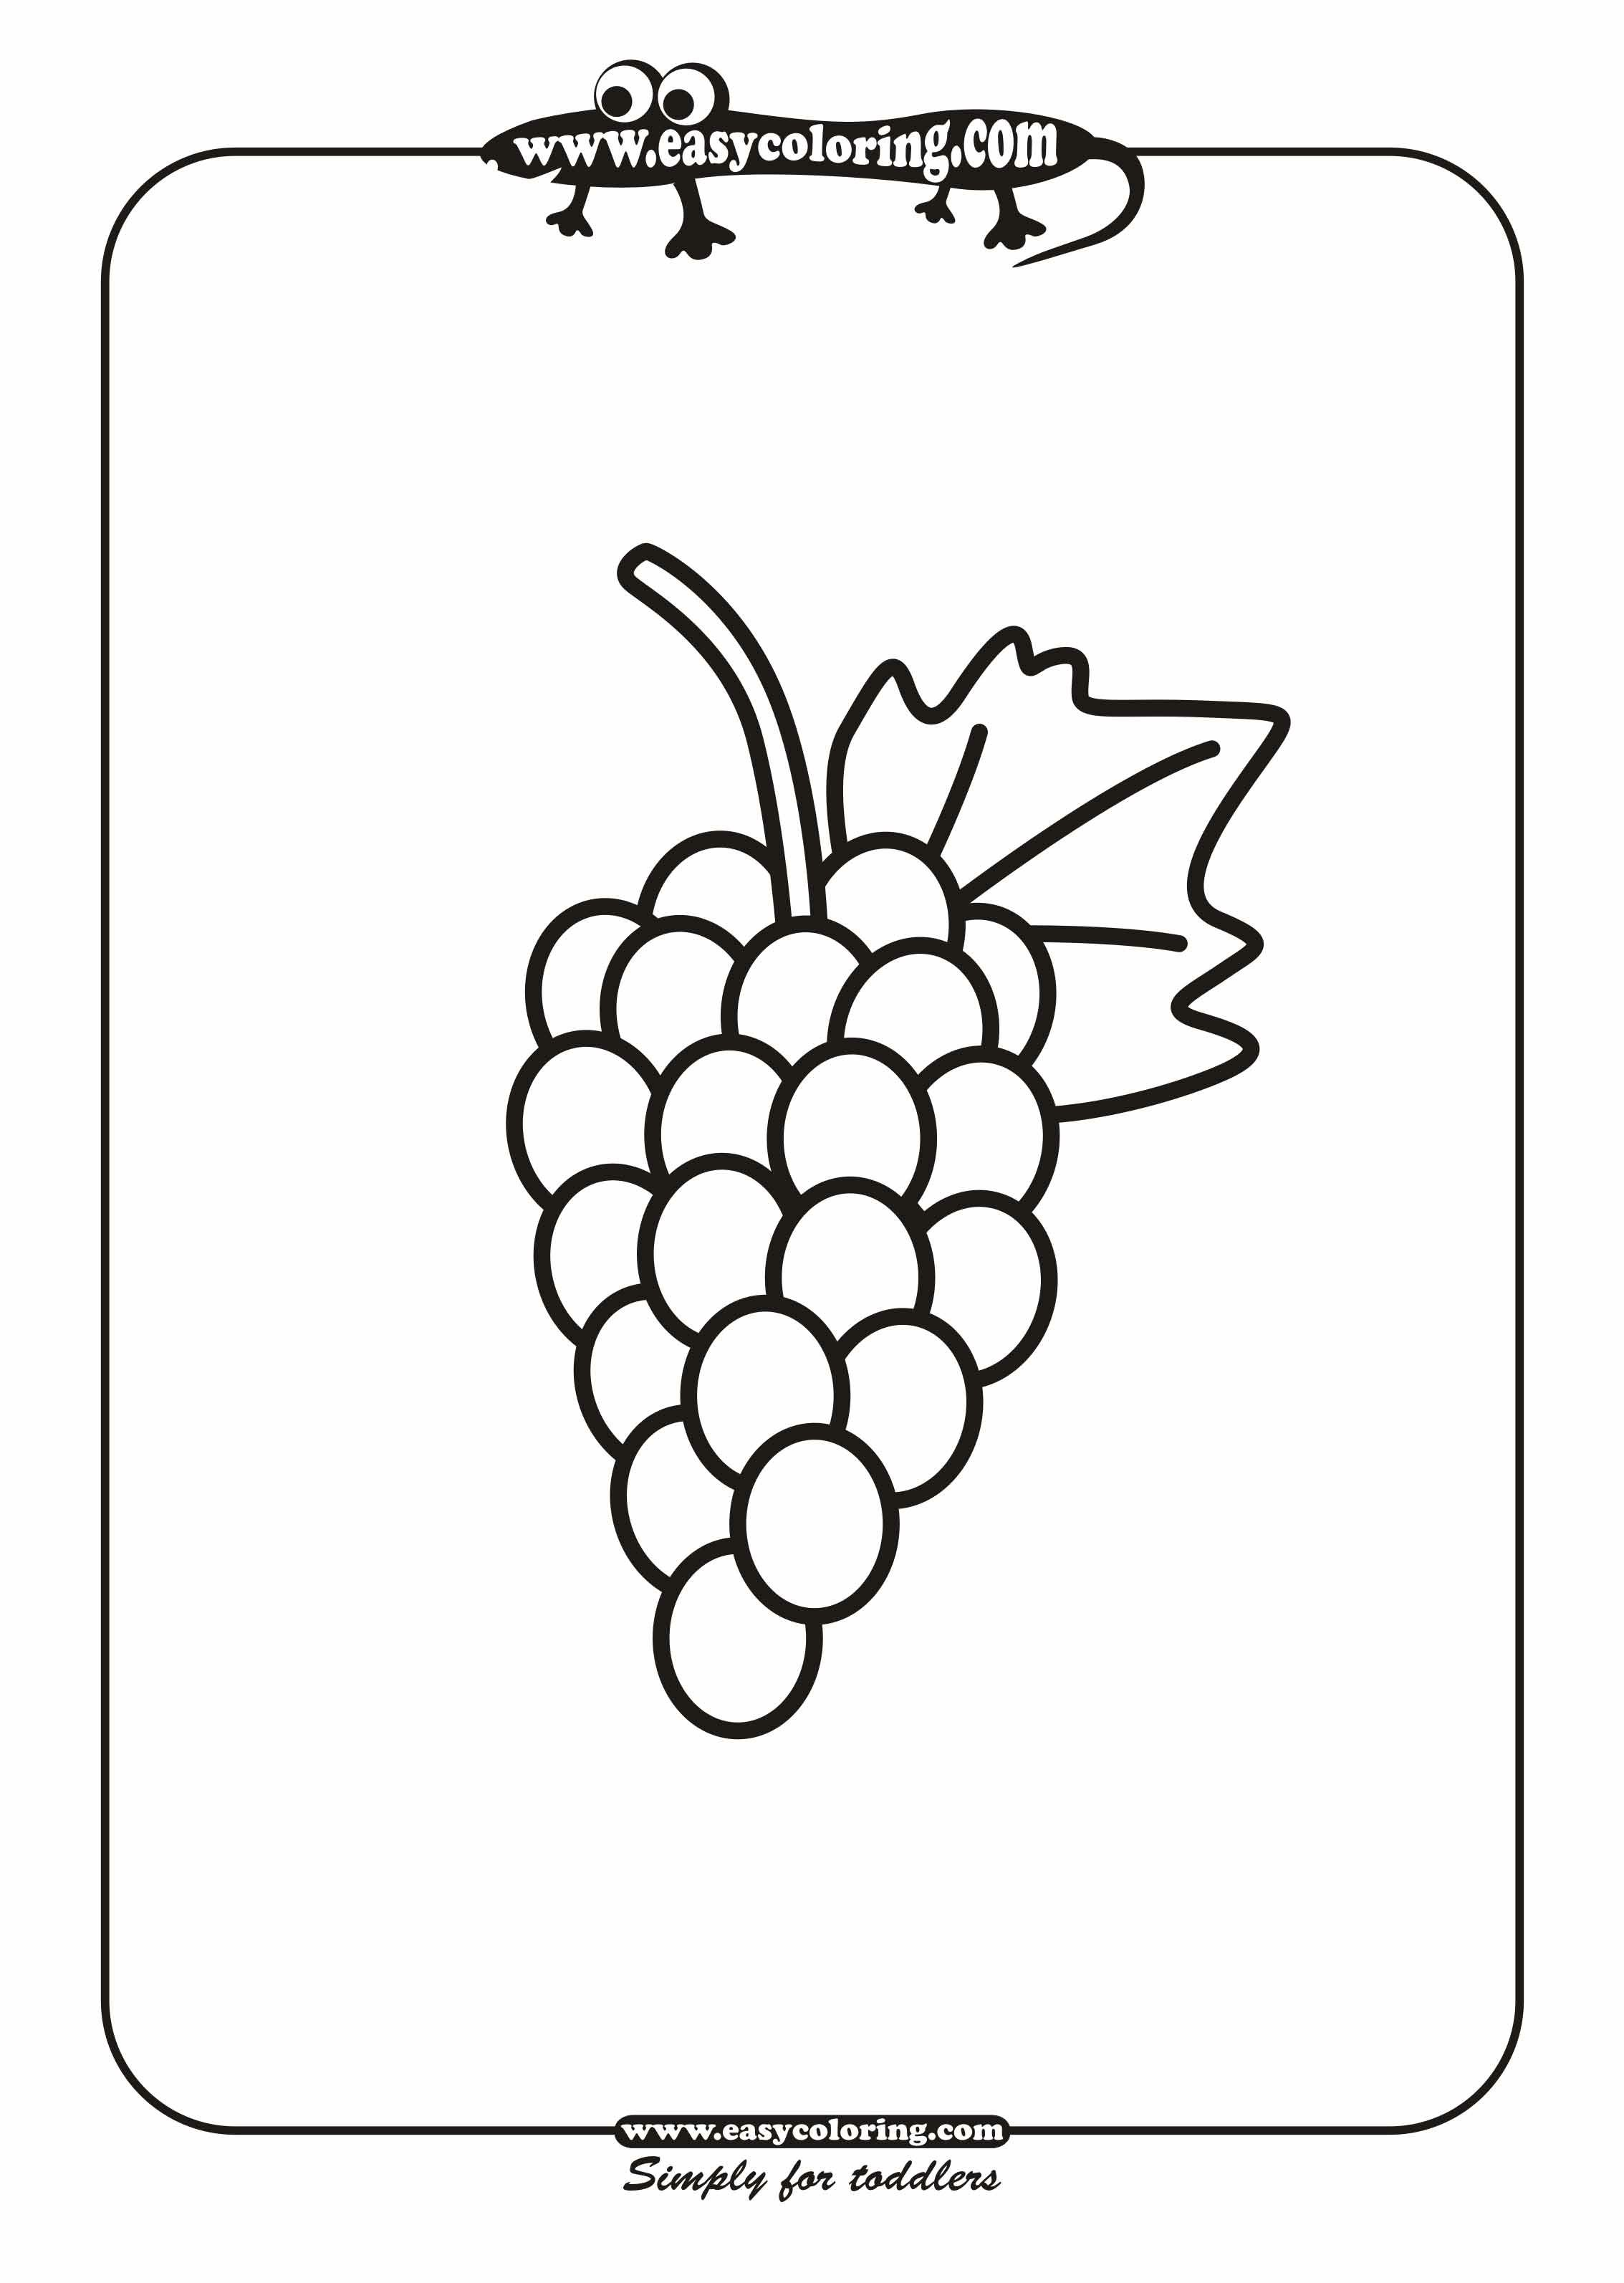 Uncategorized Grape Coloring Page g for grapes coloring page grape vine sheet kids kids